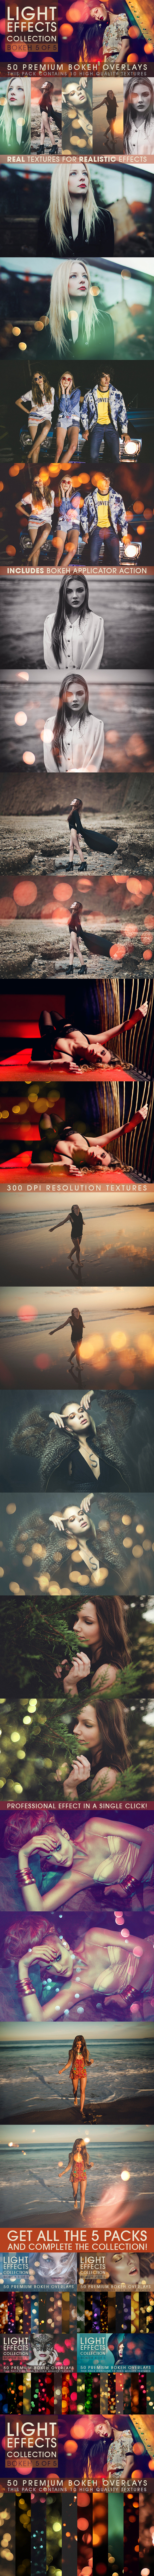 Bokeh Overlays Vol.5 - Photo Effects Actions